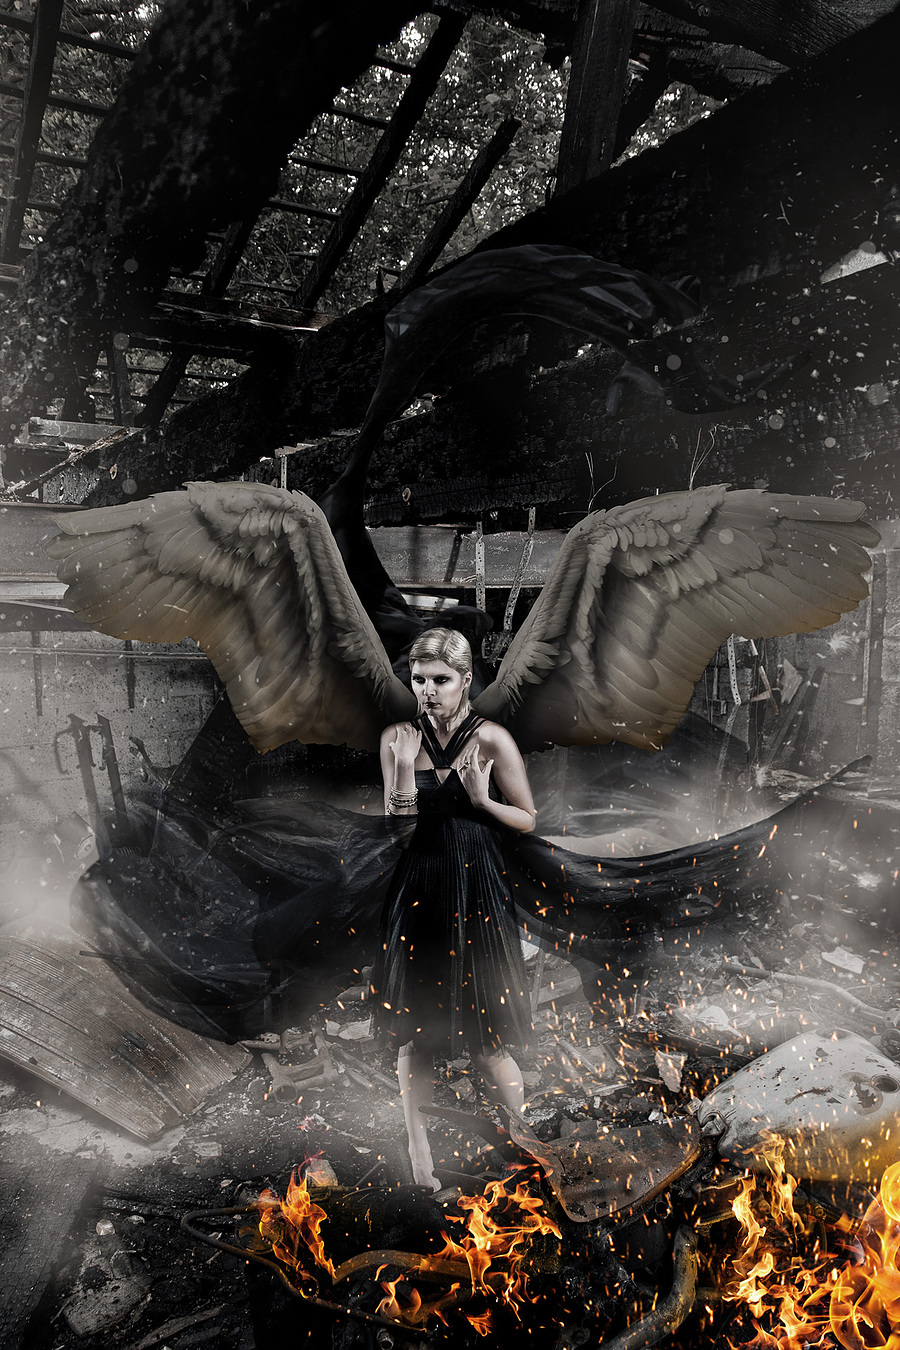 Burnt Angel / Photography by Andrew Dobell, Post processing by Creative Edge Retouch / Uploaded 1st December 2014 @ 02:08 PM